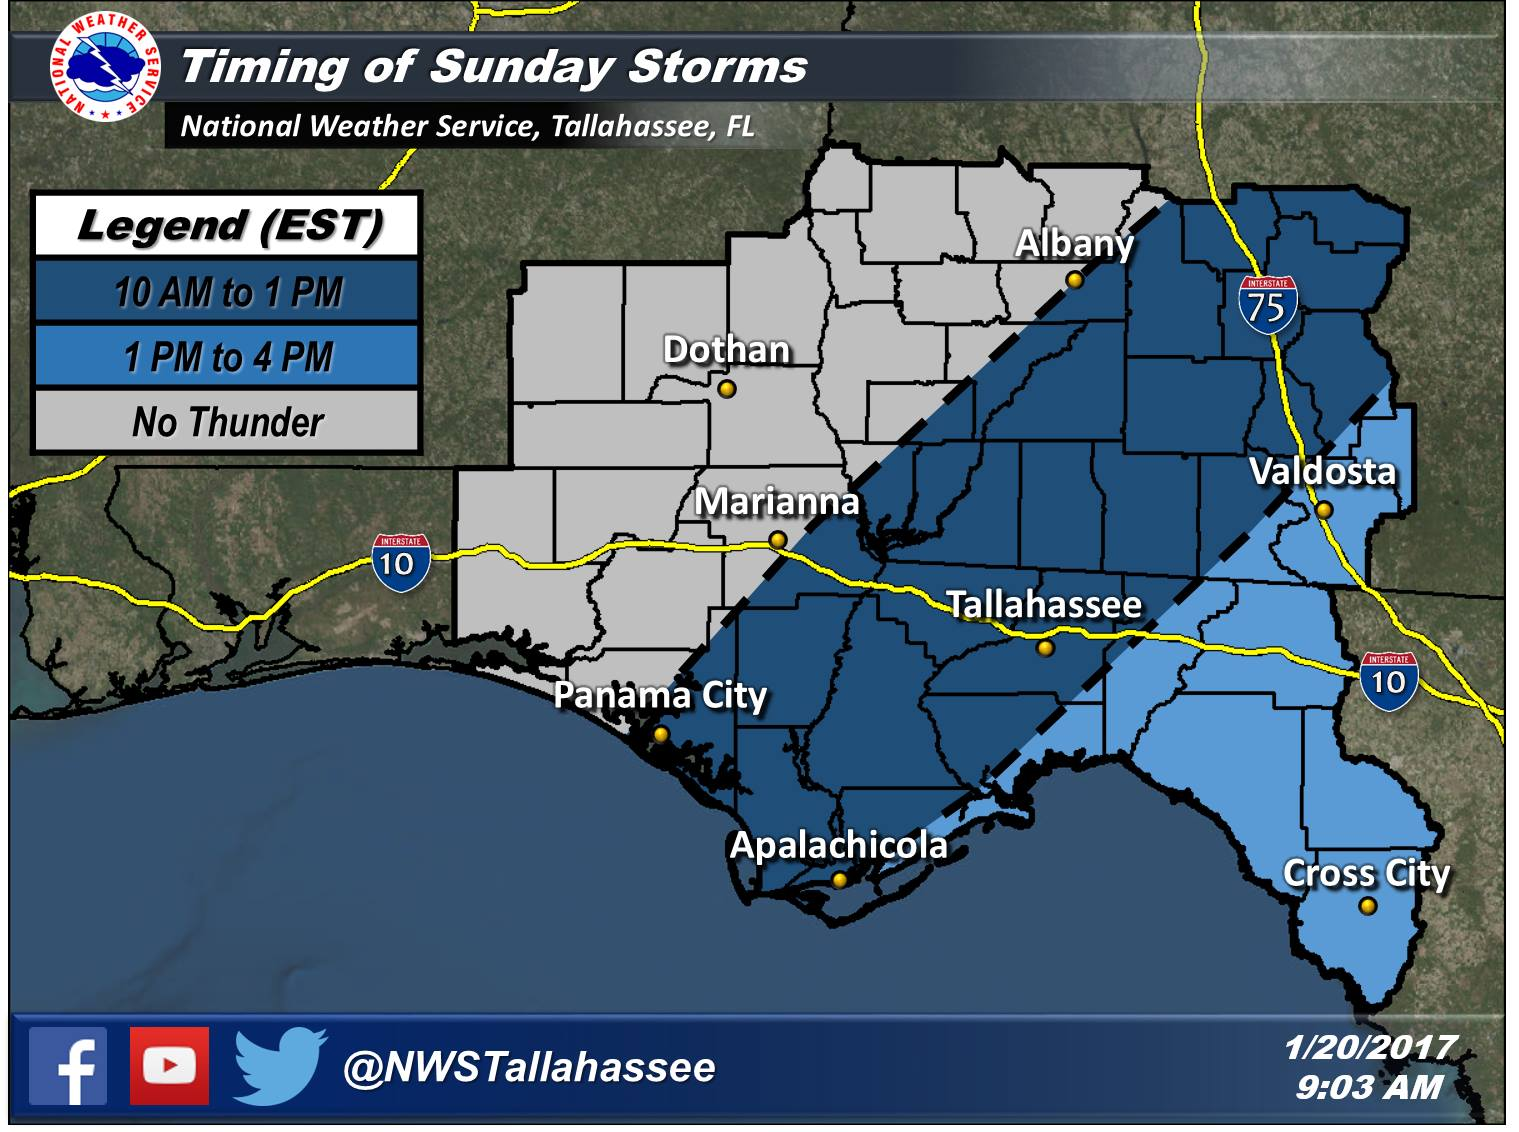 Timing of Sunday Storms